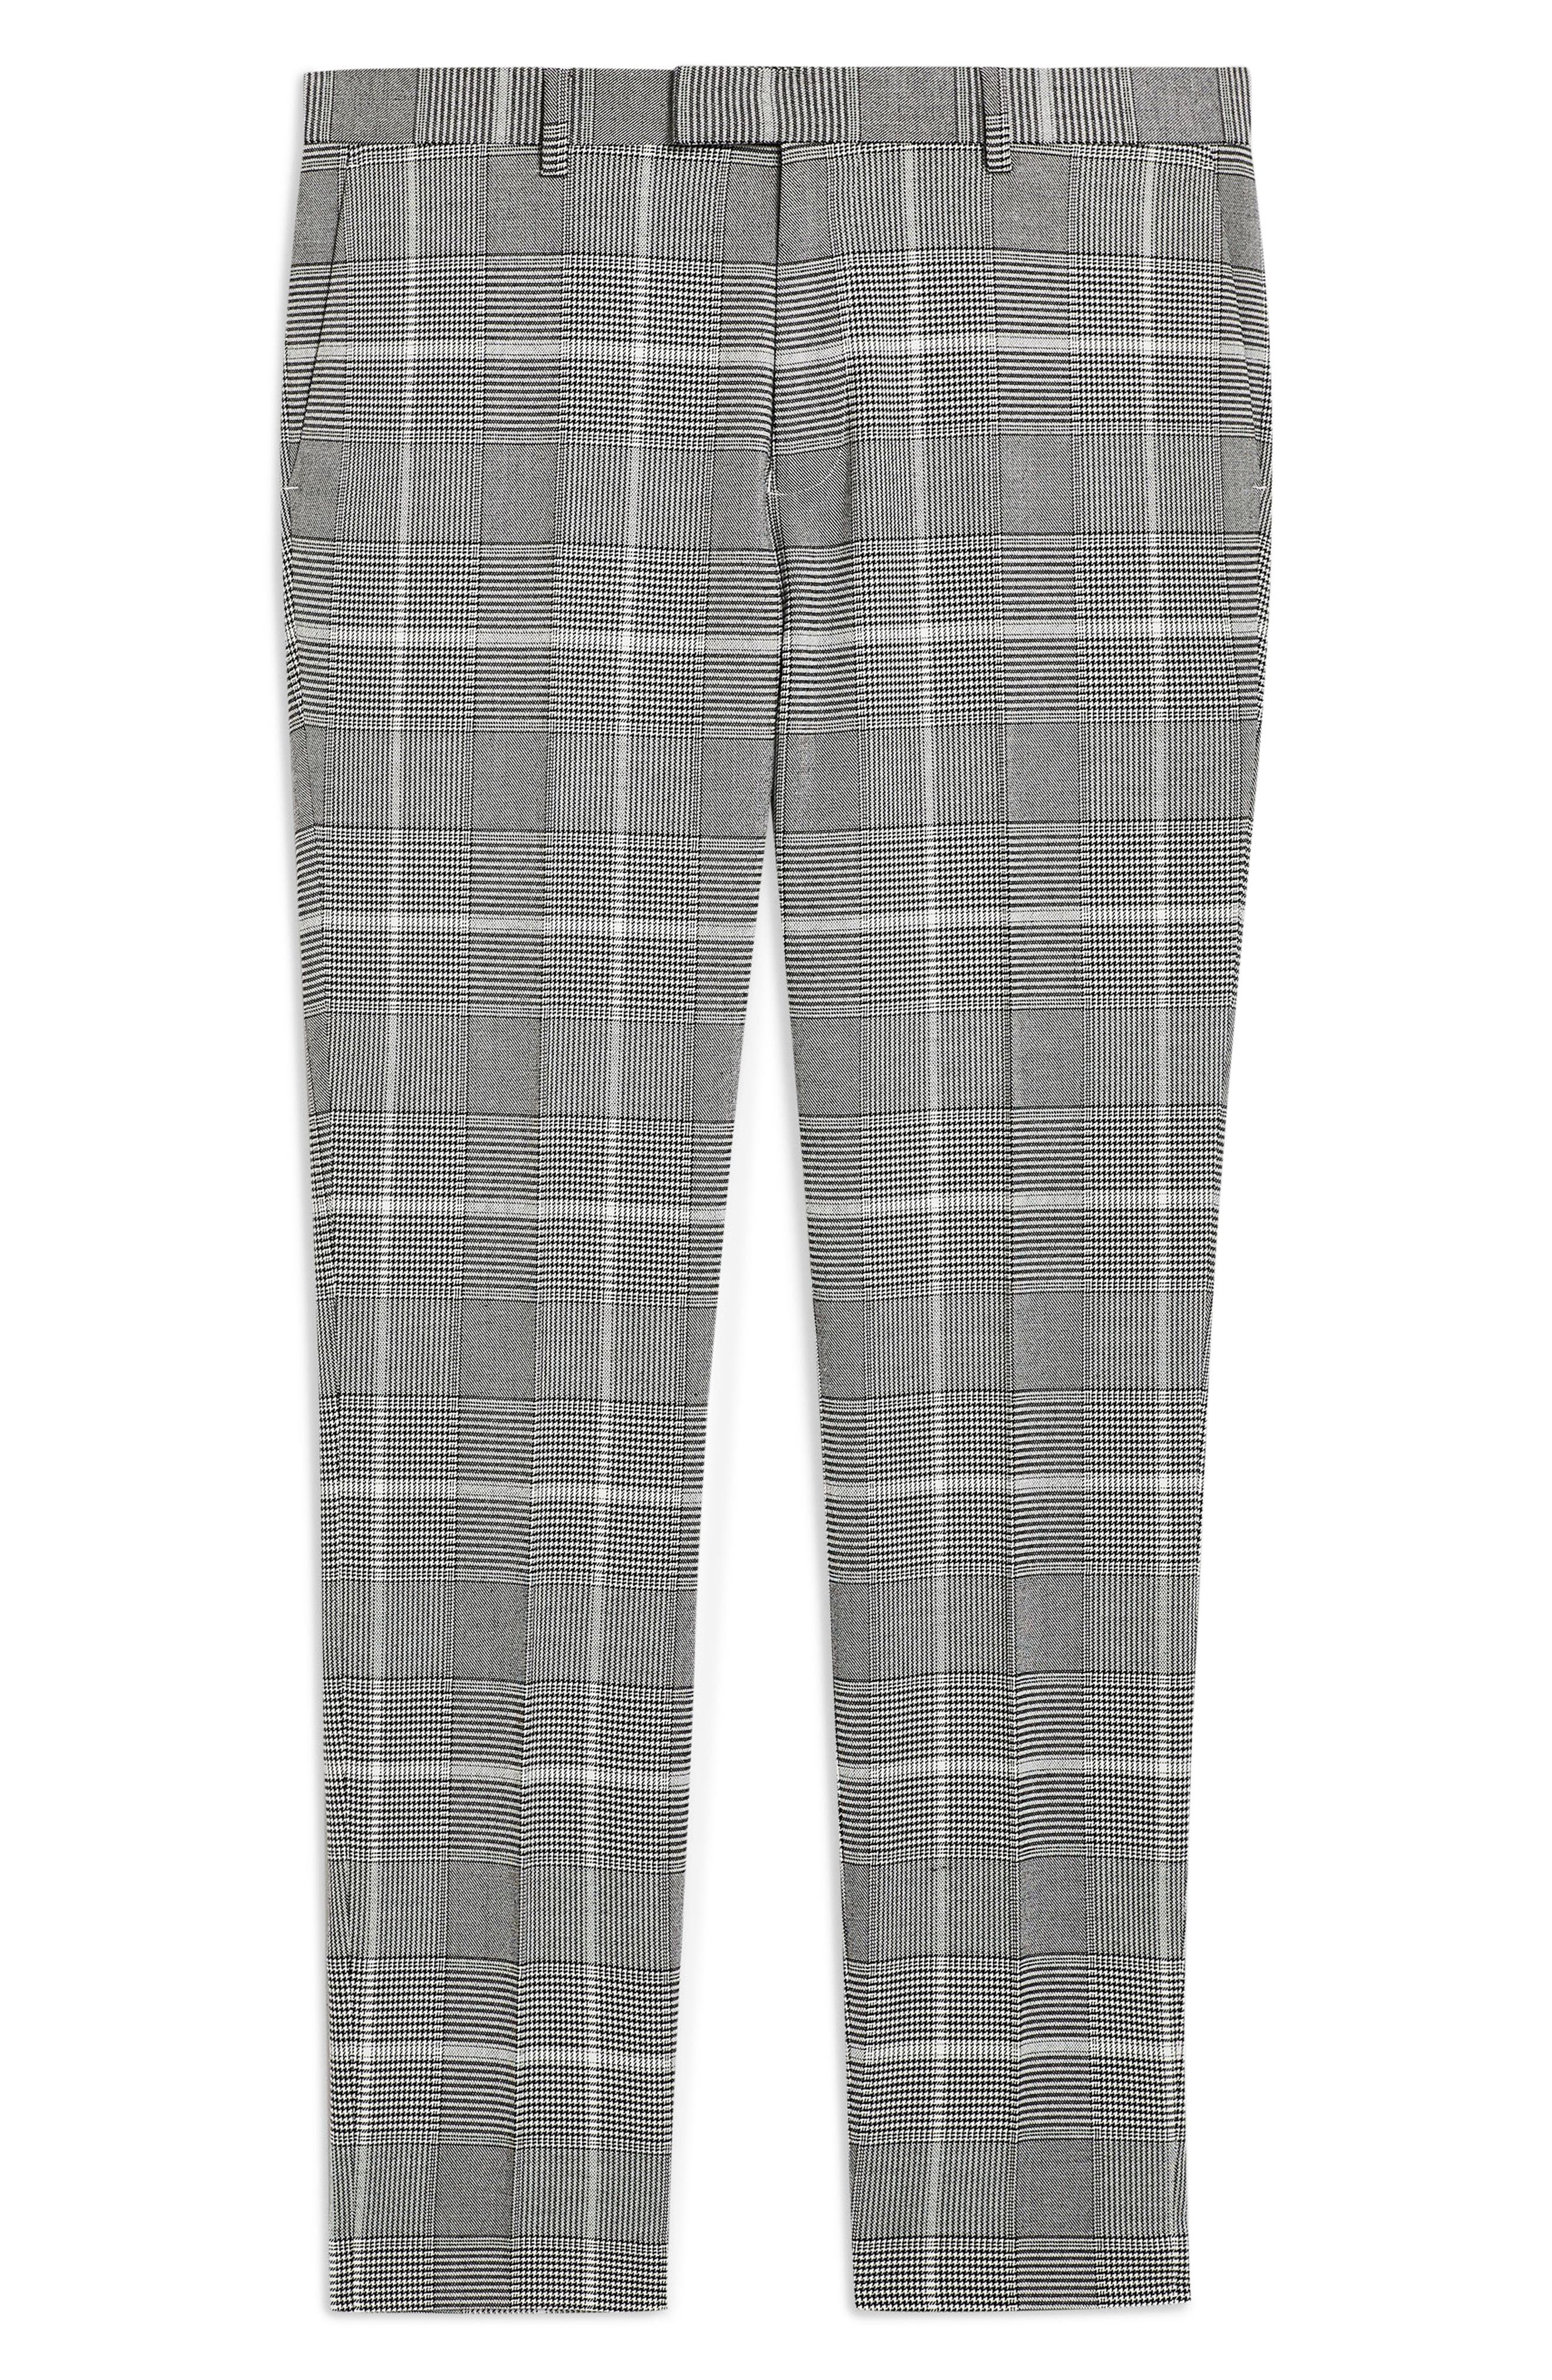 TOPMAN, Skinny Fit Check Trousers, Alternate thumbnail 4, color, 020